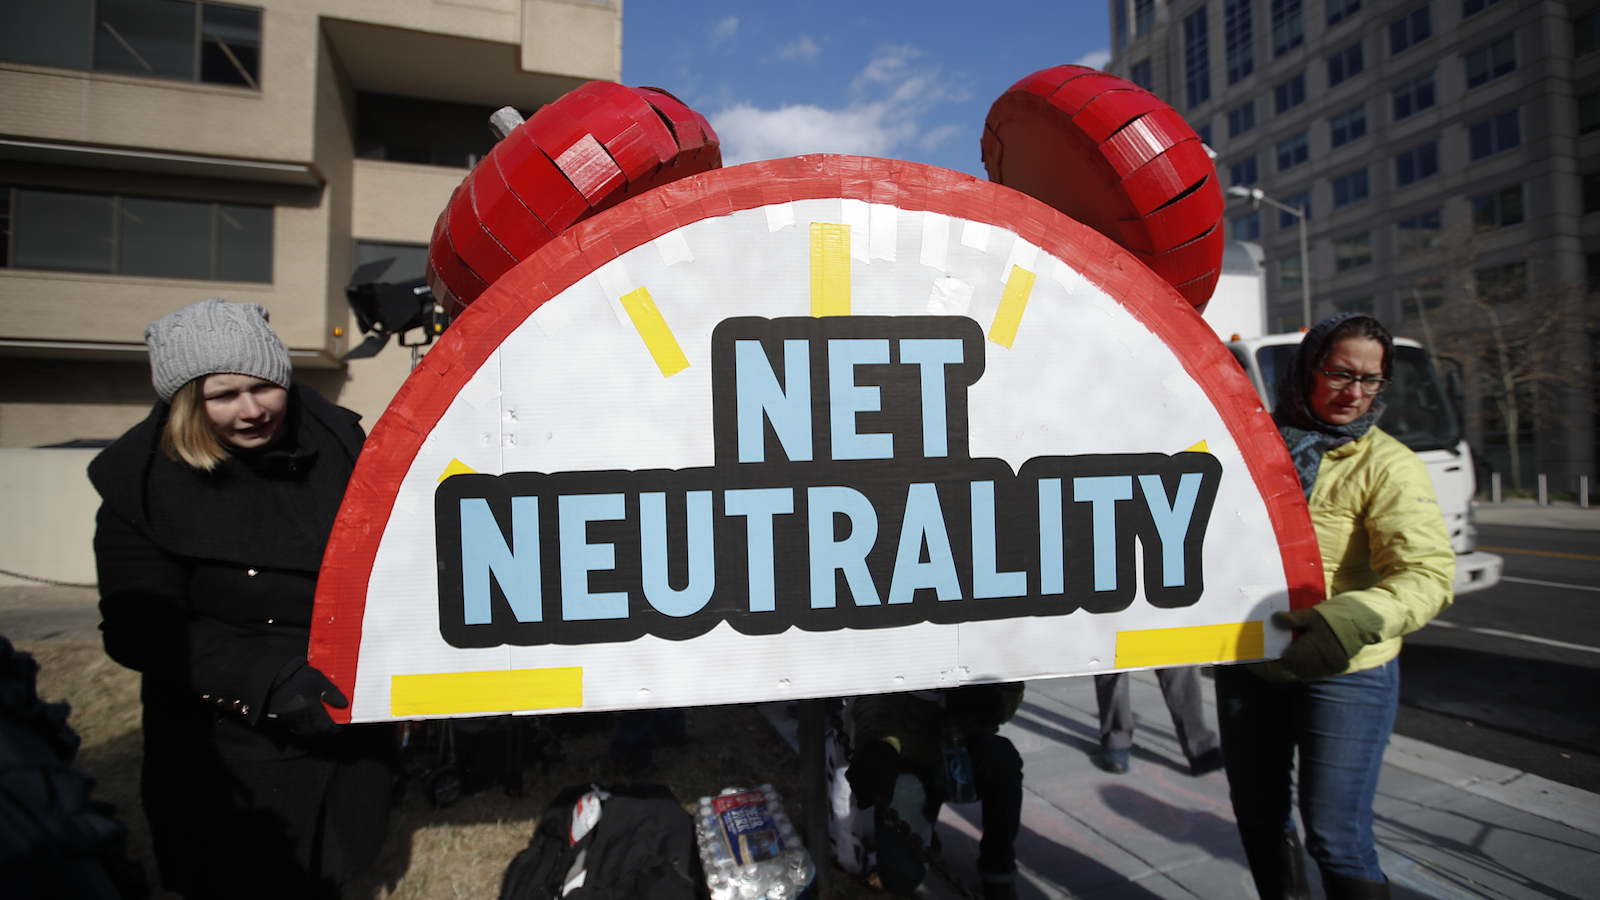 Would you rather have net neutrality or an open internet?